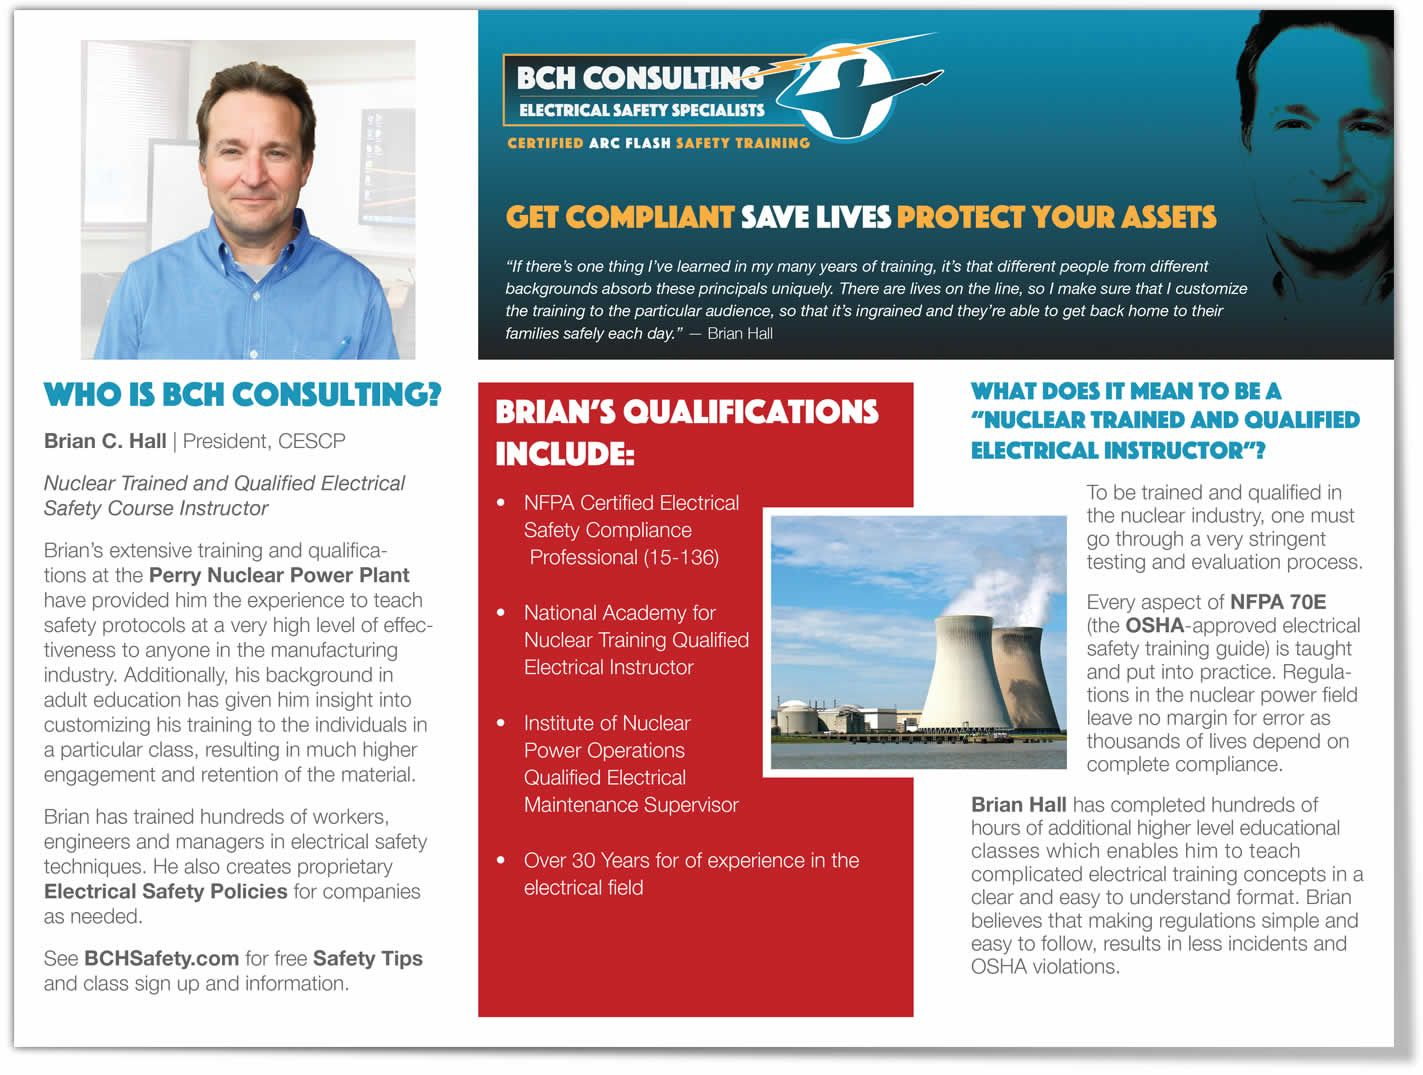 BCH Electrical Safety Consulting Edwards Communications